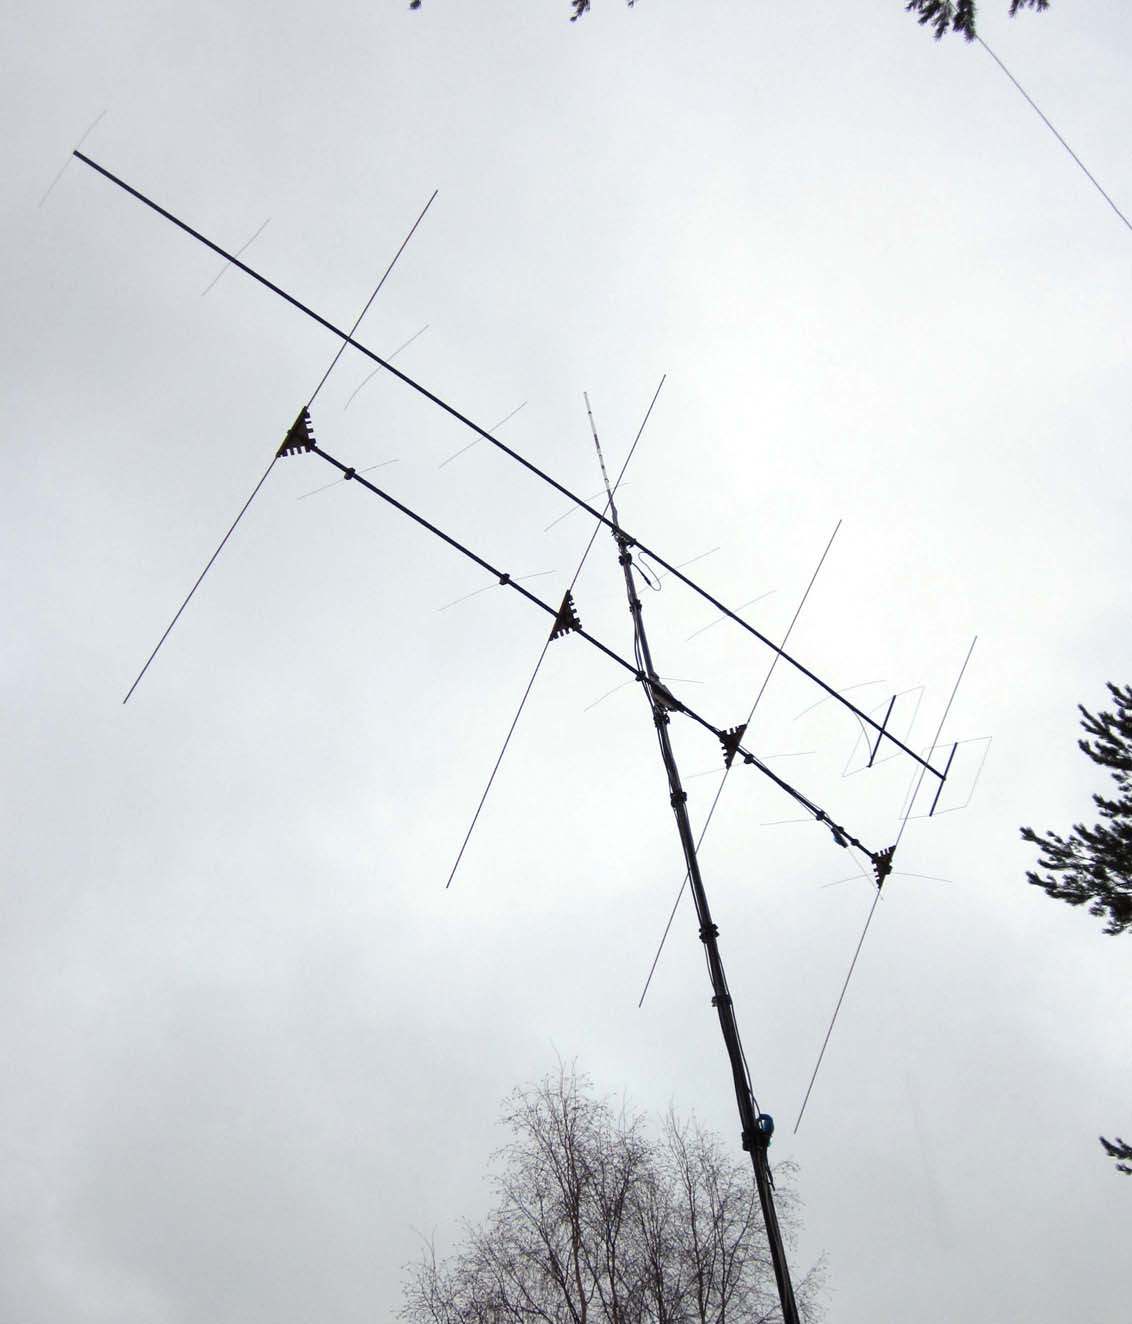 IMG_2033 2011-12-26 Aerials used in 144 MHz and 50 MHz aircraft scatter experiments (c) OH7HJ.JPG